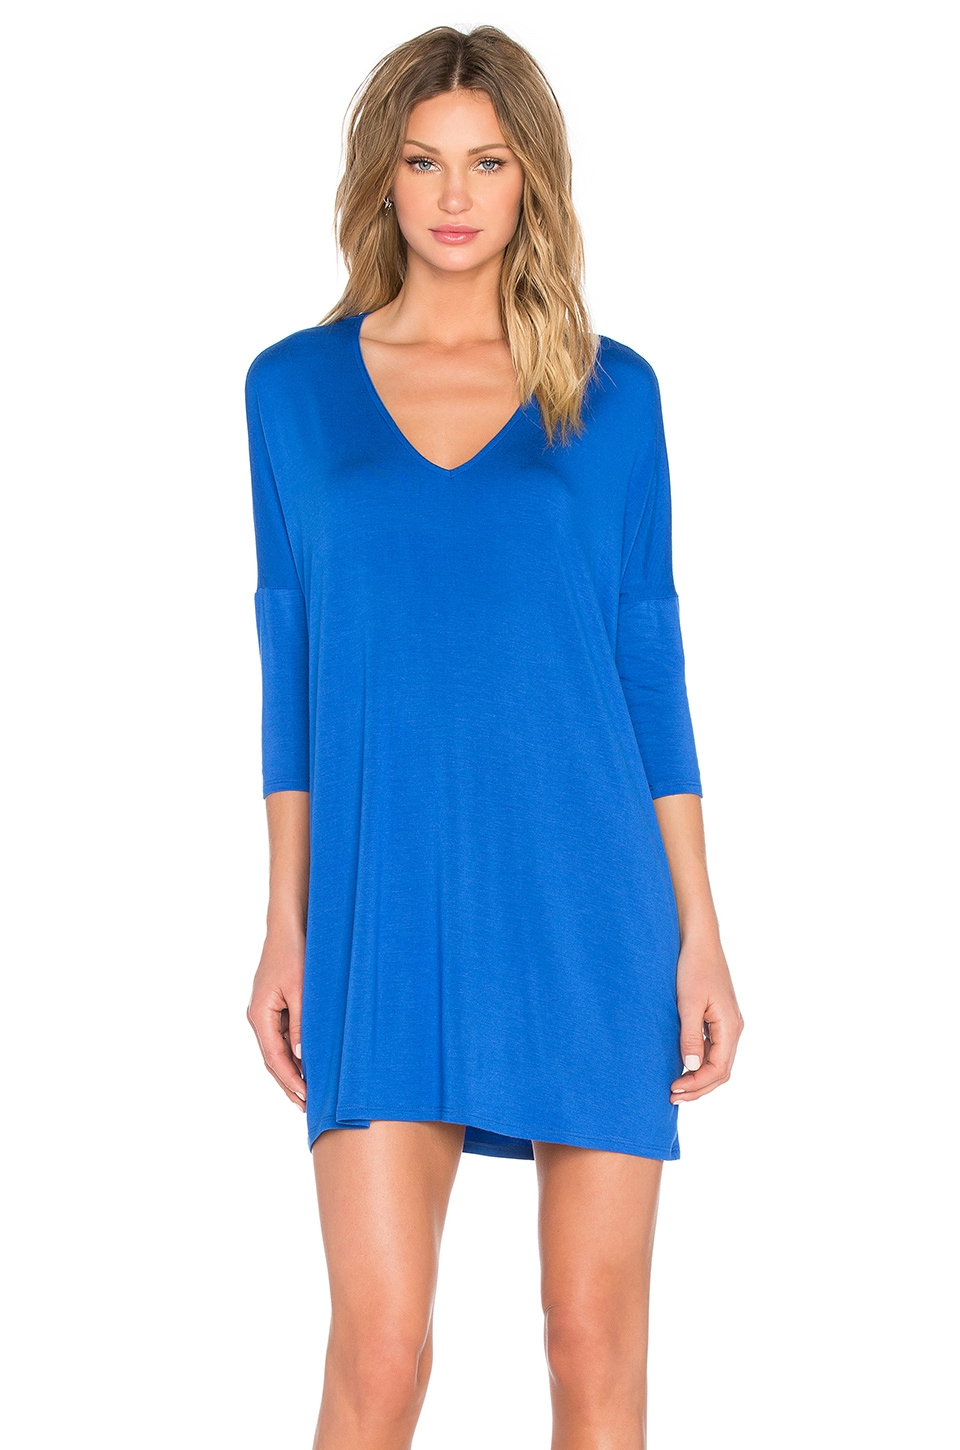 Michael Stars Mara Dress in Cobalt